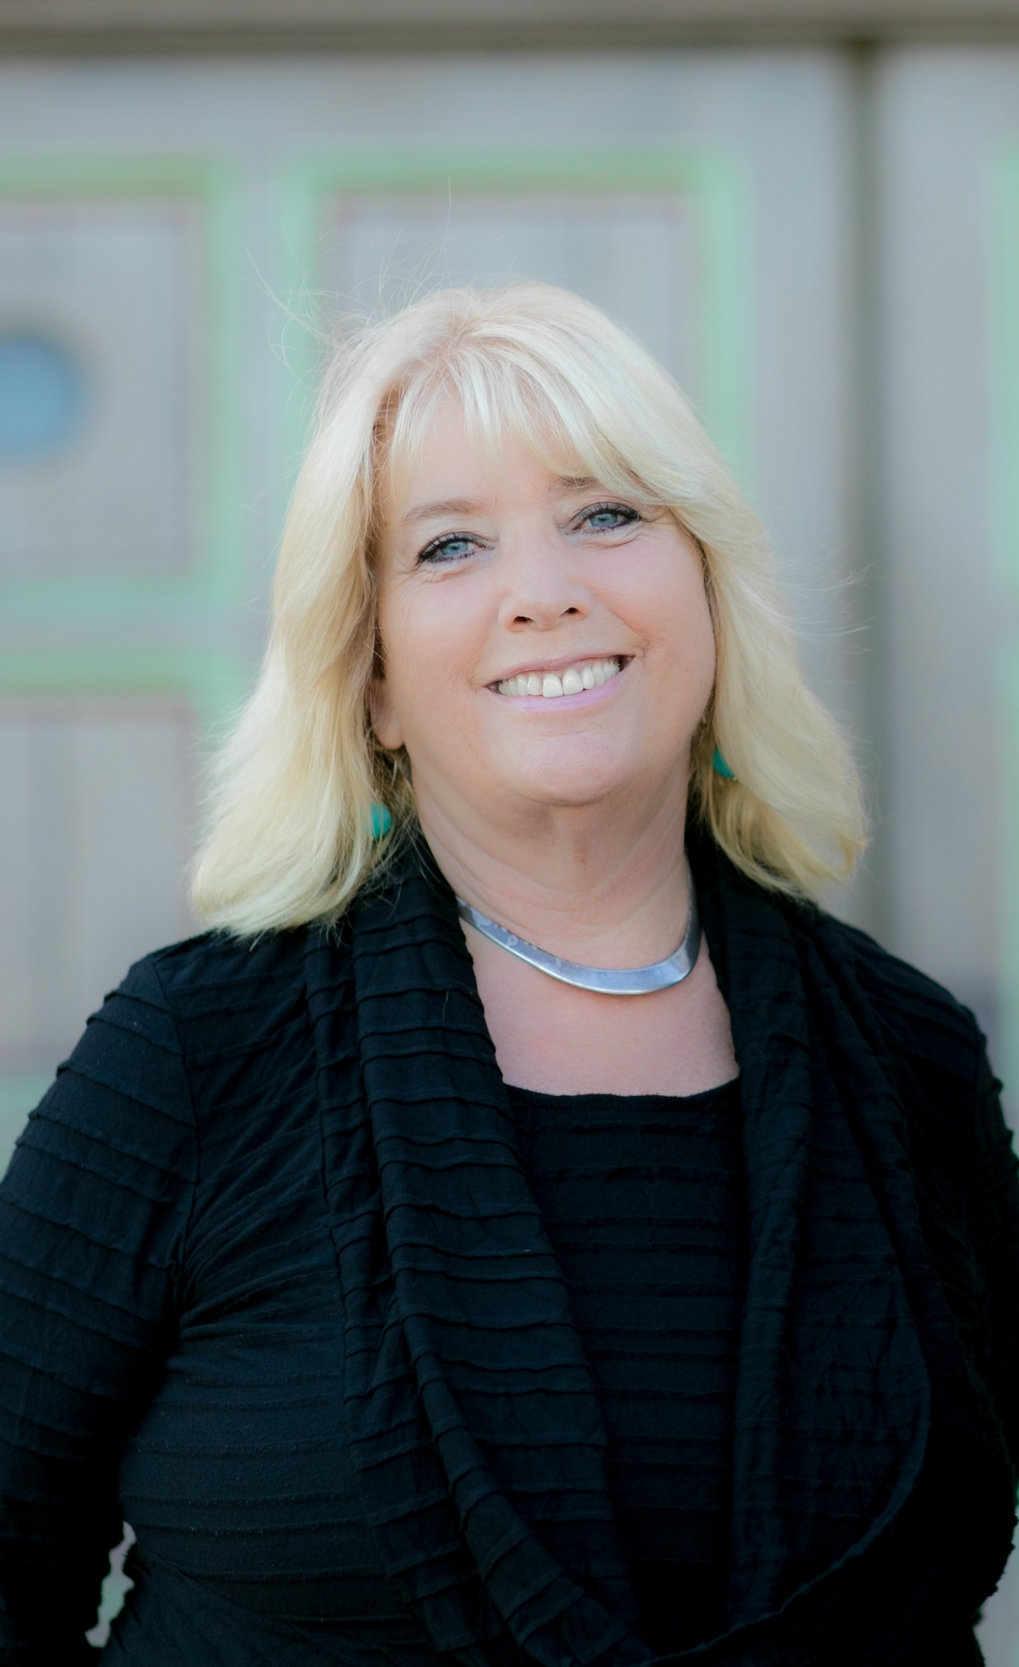 MEET NANCY - • Central Coast Realtor and Senior Real Estate Specialist with over 15 years experience• Volunteer at Montecito Motor Classics and a member of the Santa Barbara Club, Santa Barbara Women's Club, AACA and a Sponsor of The Friendship Center.• Being a resident since childhood, Nancy knows the city inside and out.BRE #01459696